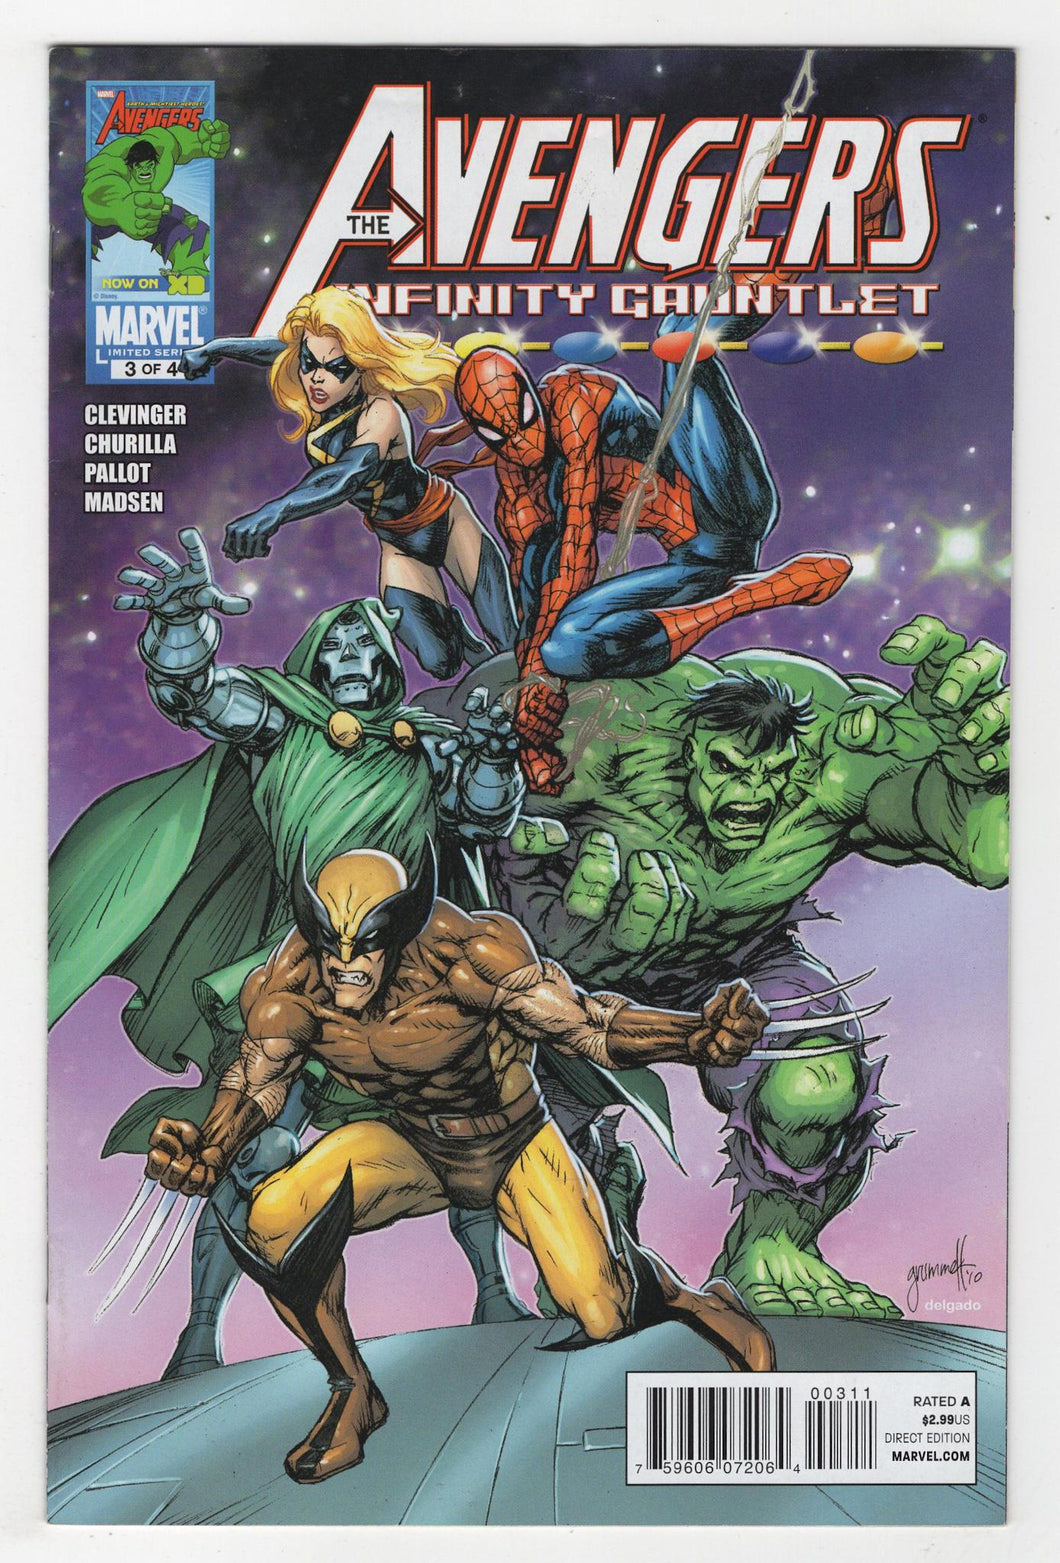 Avengers and the Infinity Gauntlet #3 Cover Front